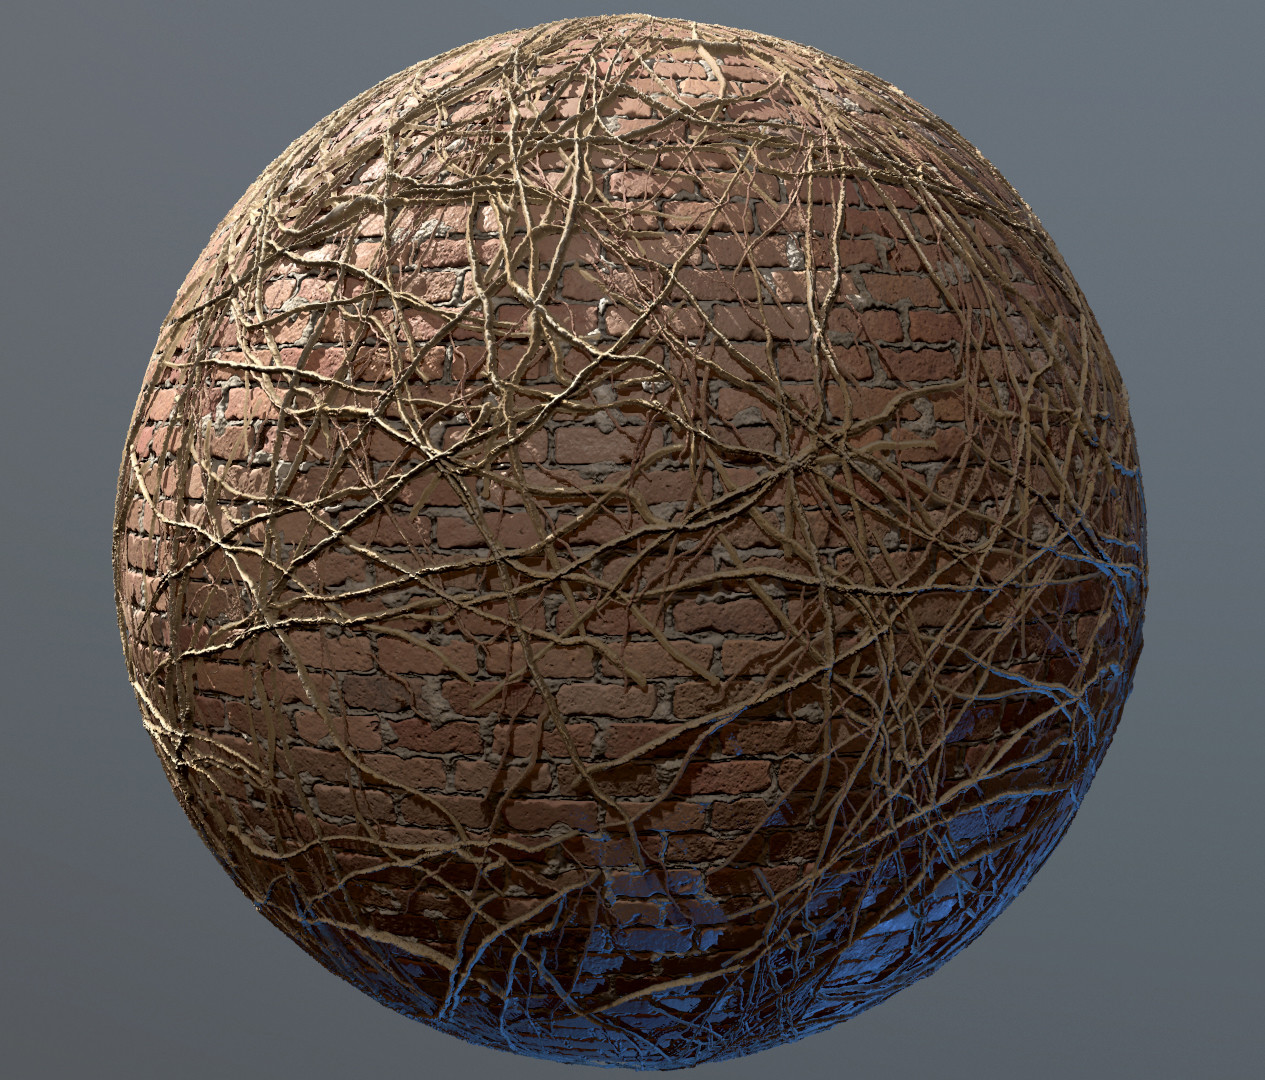 Preview of what the ivy looks like over a brick texture.